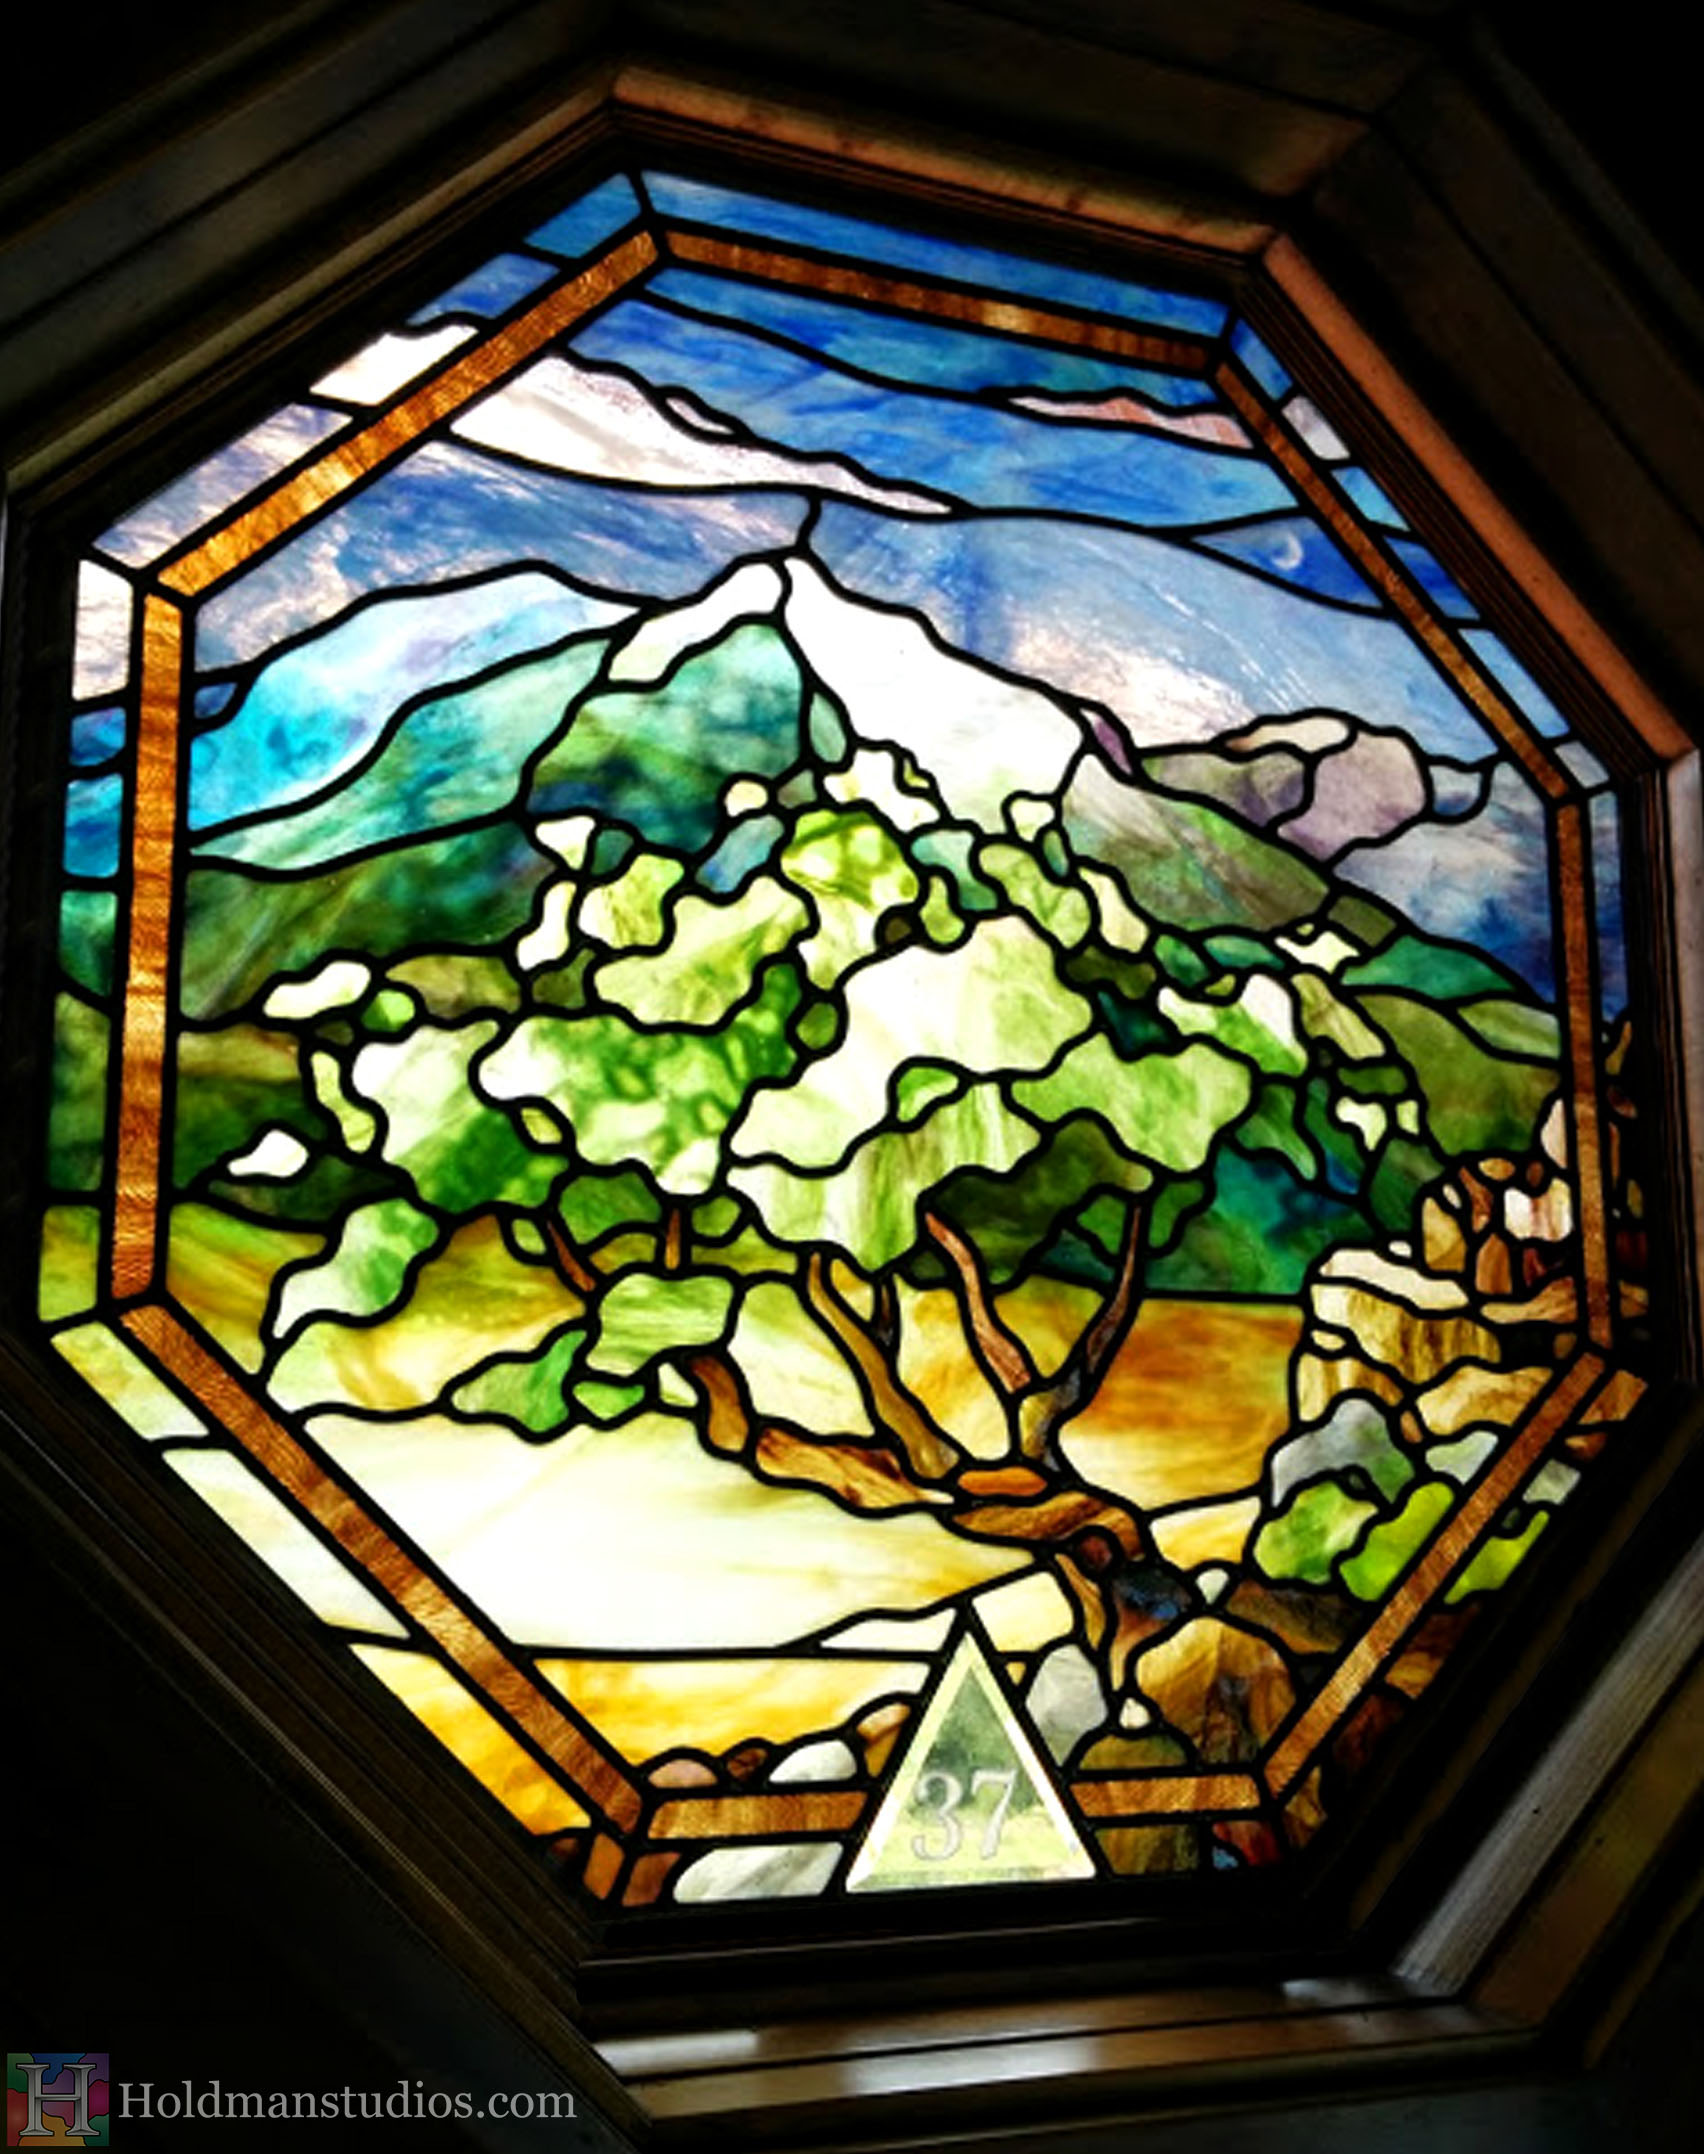 Octagon stained glass window of the sky with clouds, mountains, cliffs, trees,flowers, plants, rocks and leaves.Created by artists under the direction of Tom Holdman at Holdman Studios.